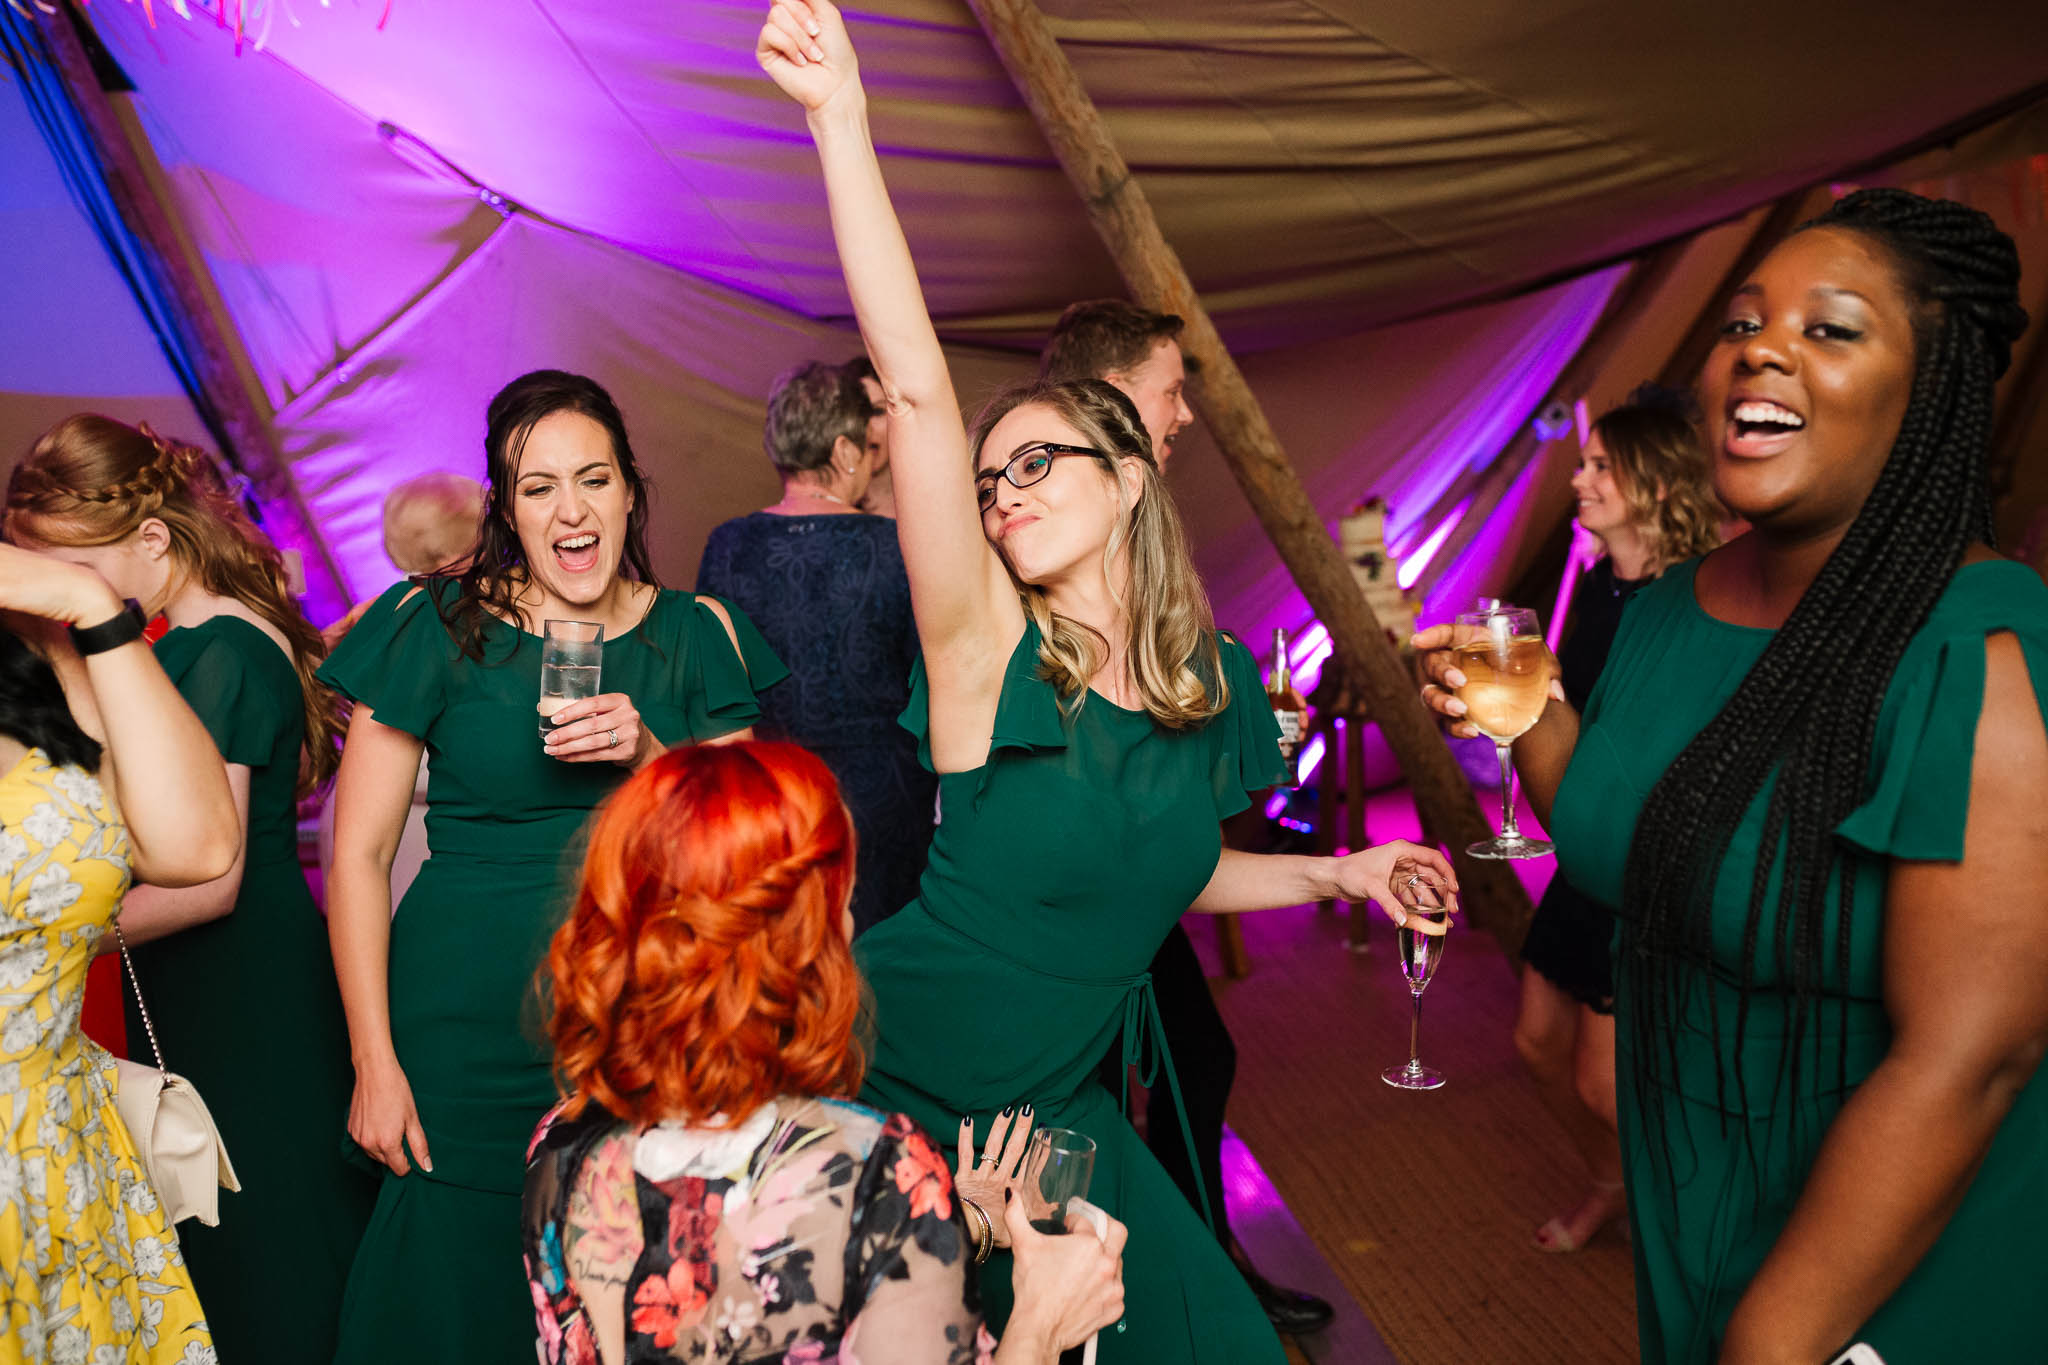 bridesmaids dancing and having fun